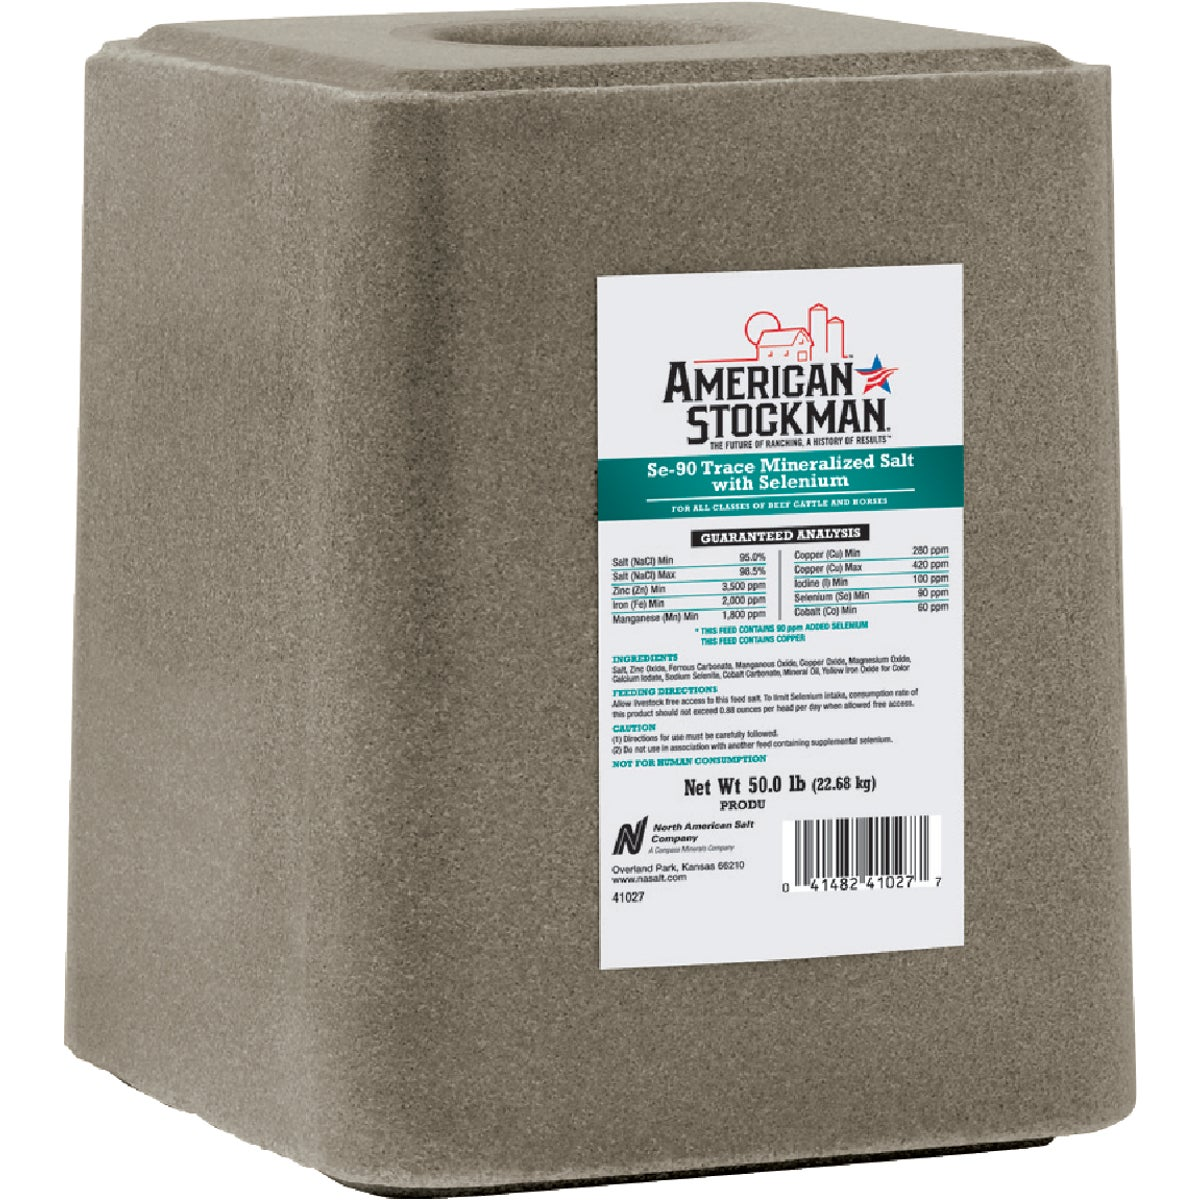 50LB TM W/SEL BLOCK SALT - 41027 by North American Salt